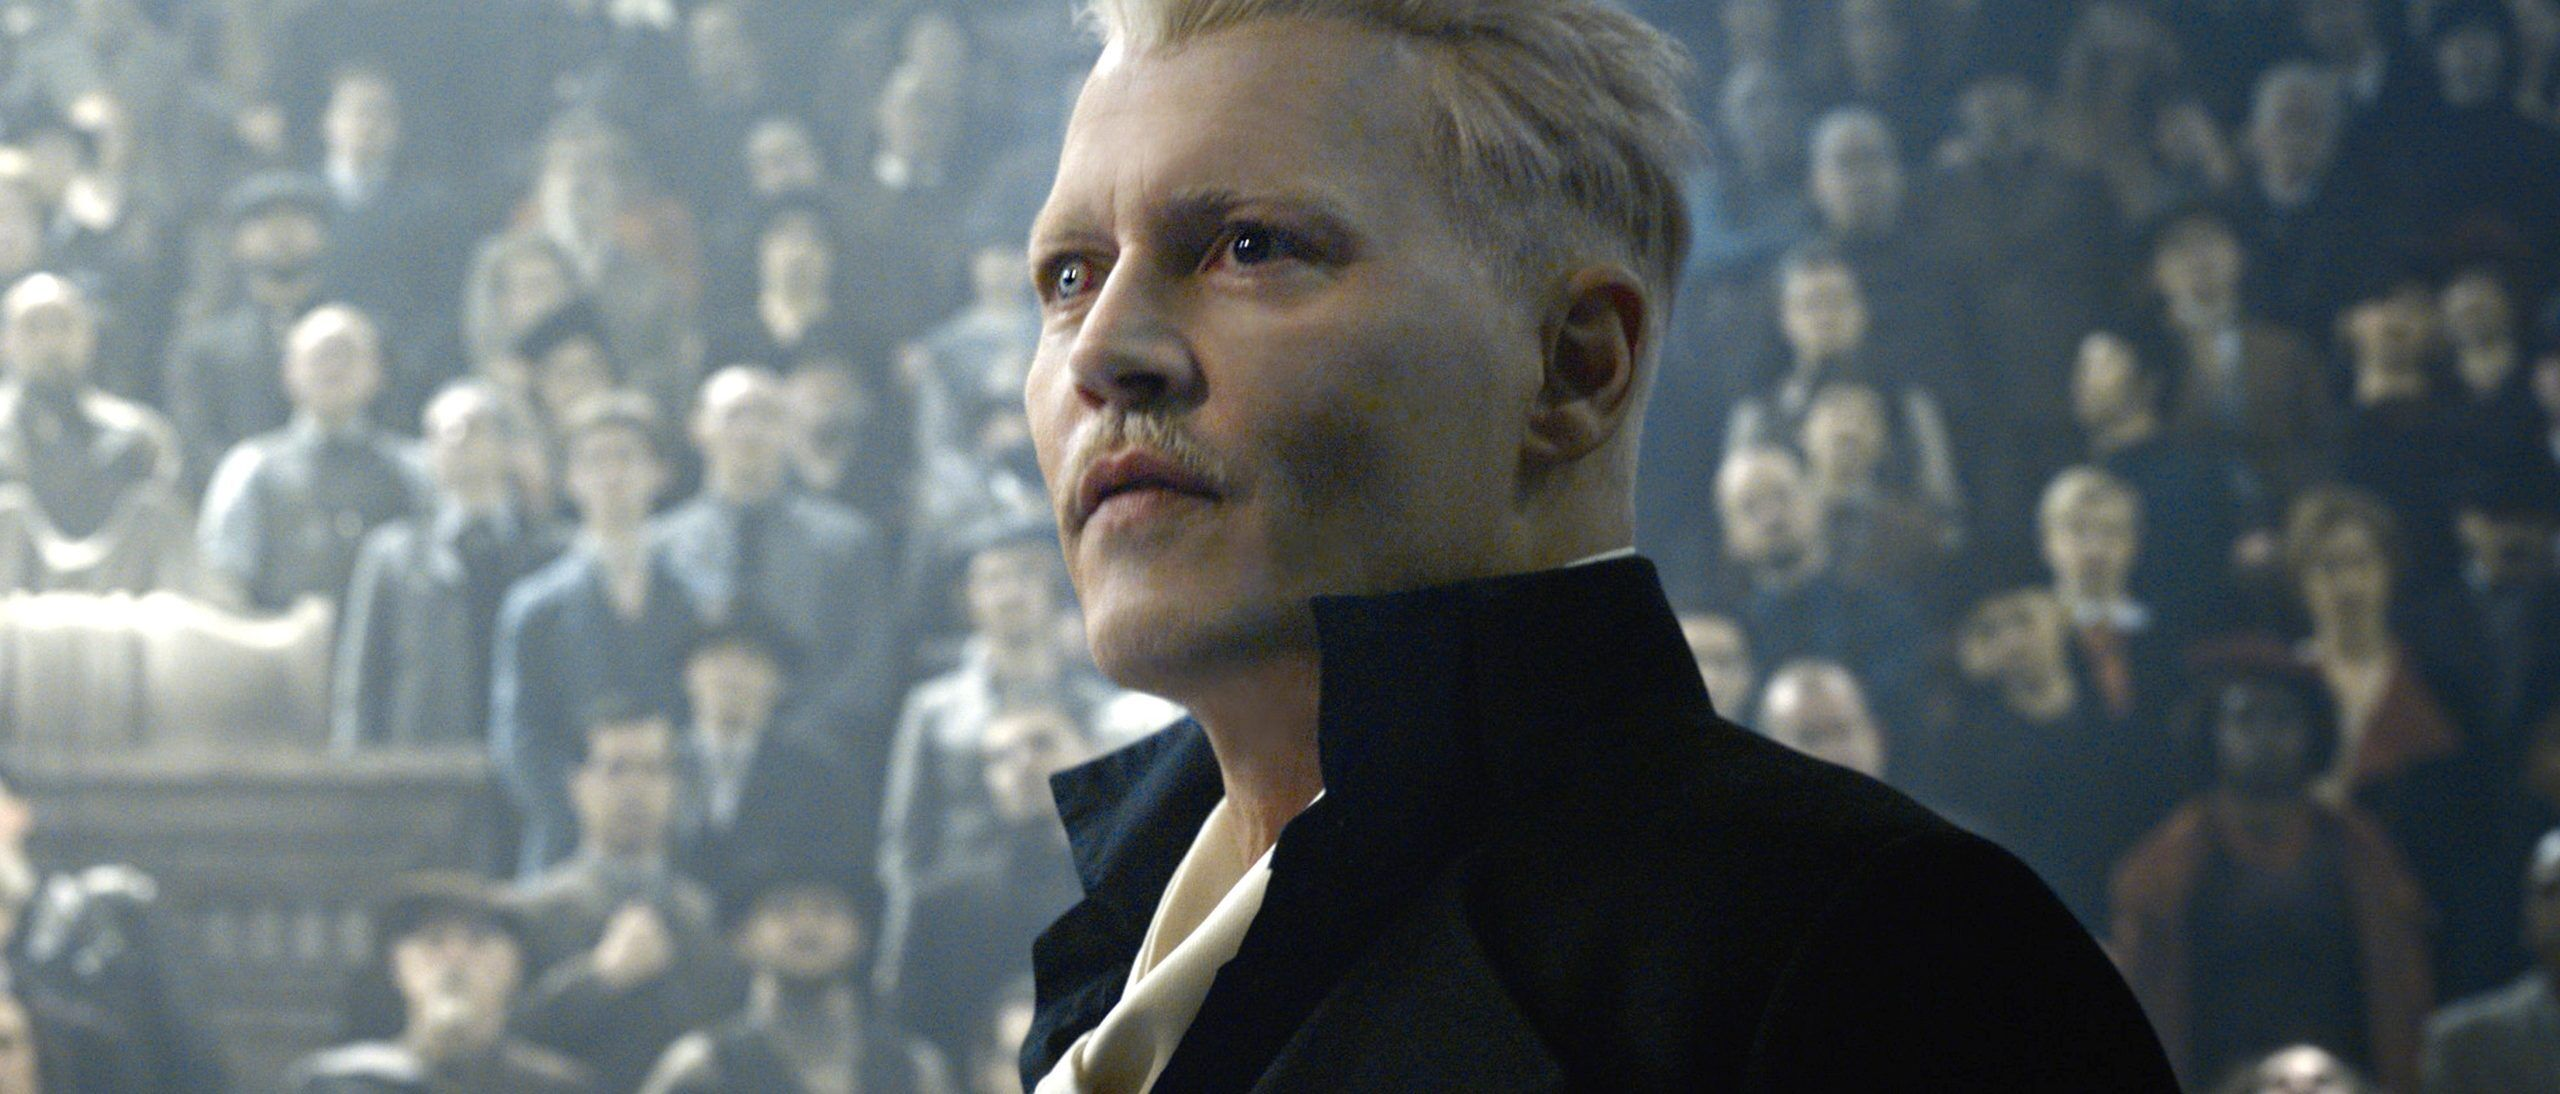 fantastic-beasts-the-crimes-of-grindelwald johnny depp